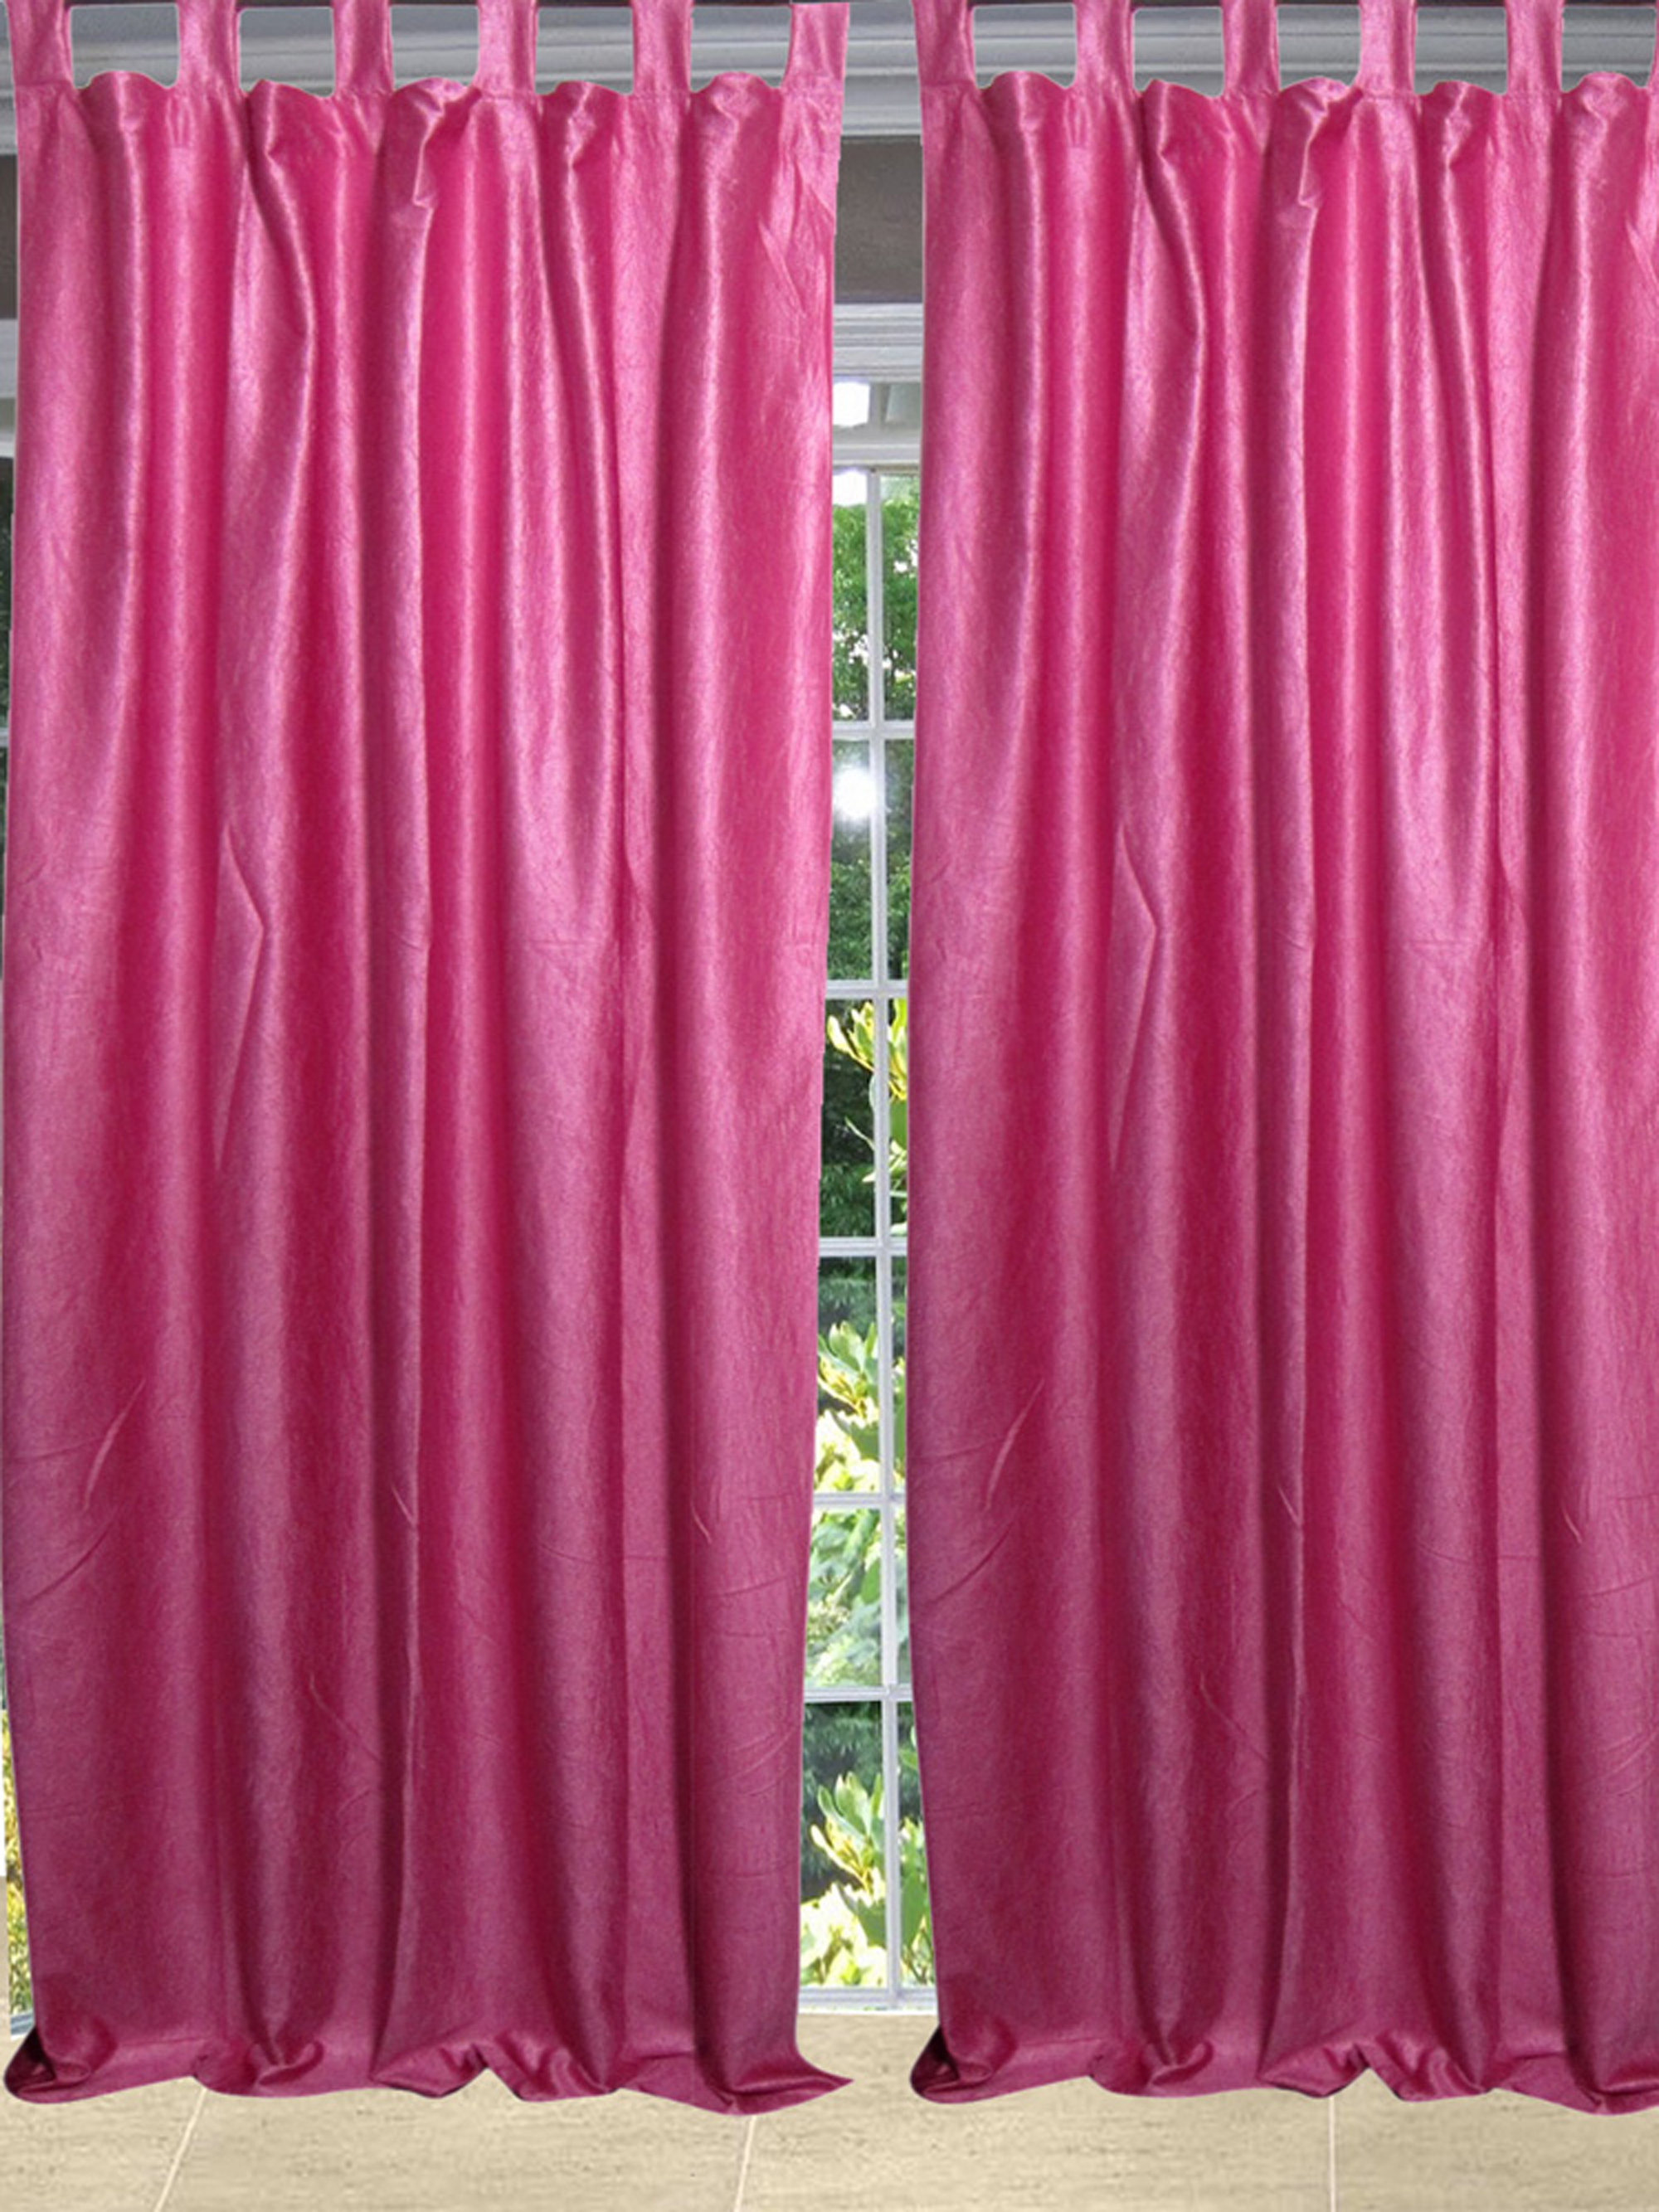 Mogul Curtain Pink Drape Single Panel Window Treatment Home Décor 48x96